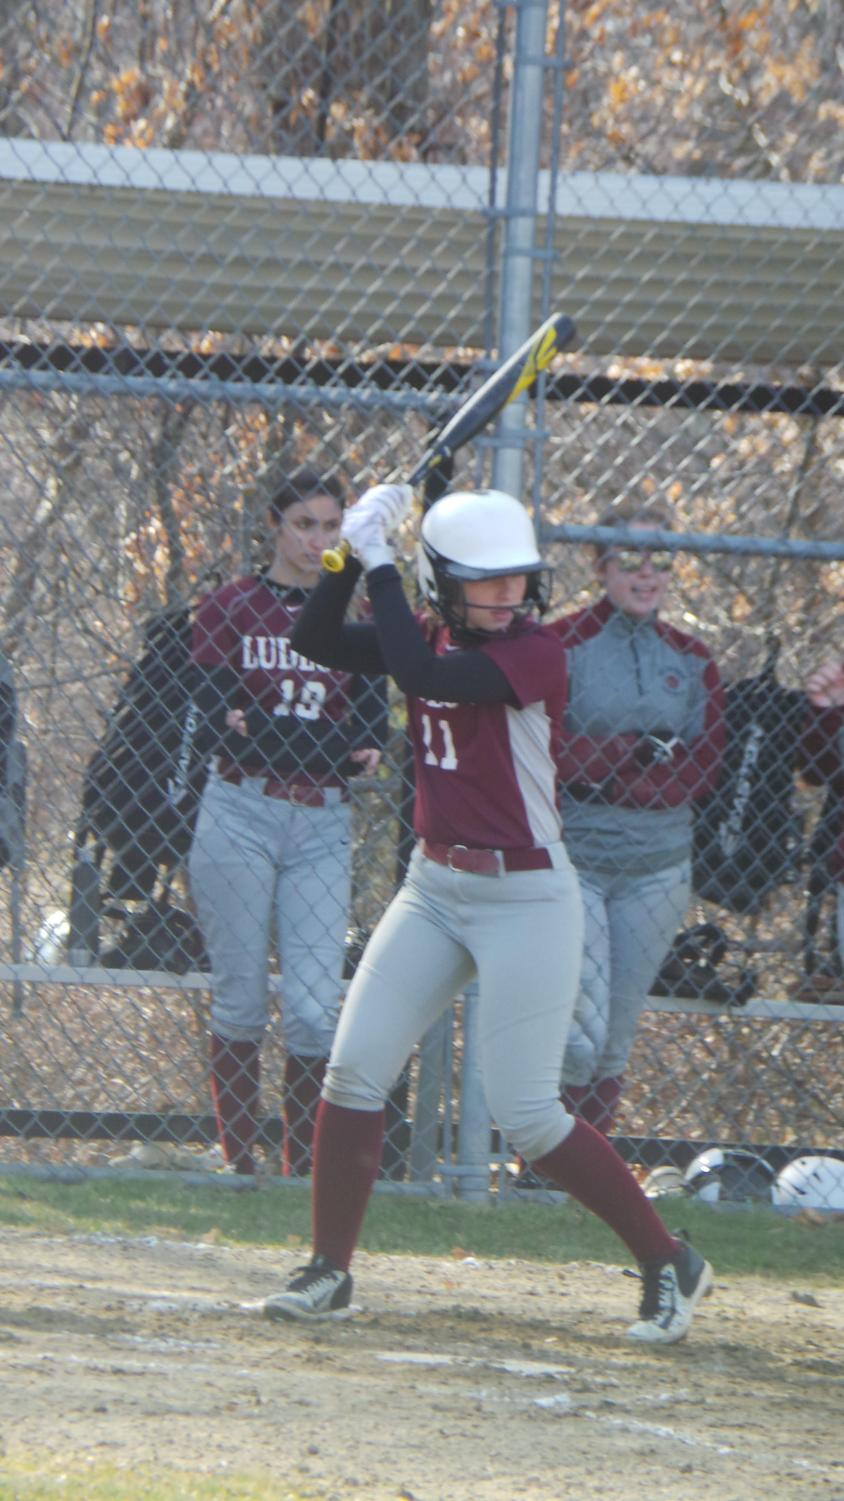 Senior softball third baseman Lauren Dutton plans to try for a roster spot at Nichols College in Dudley, Mass.